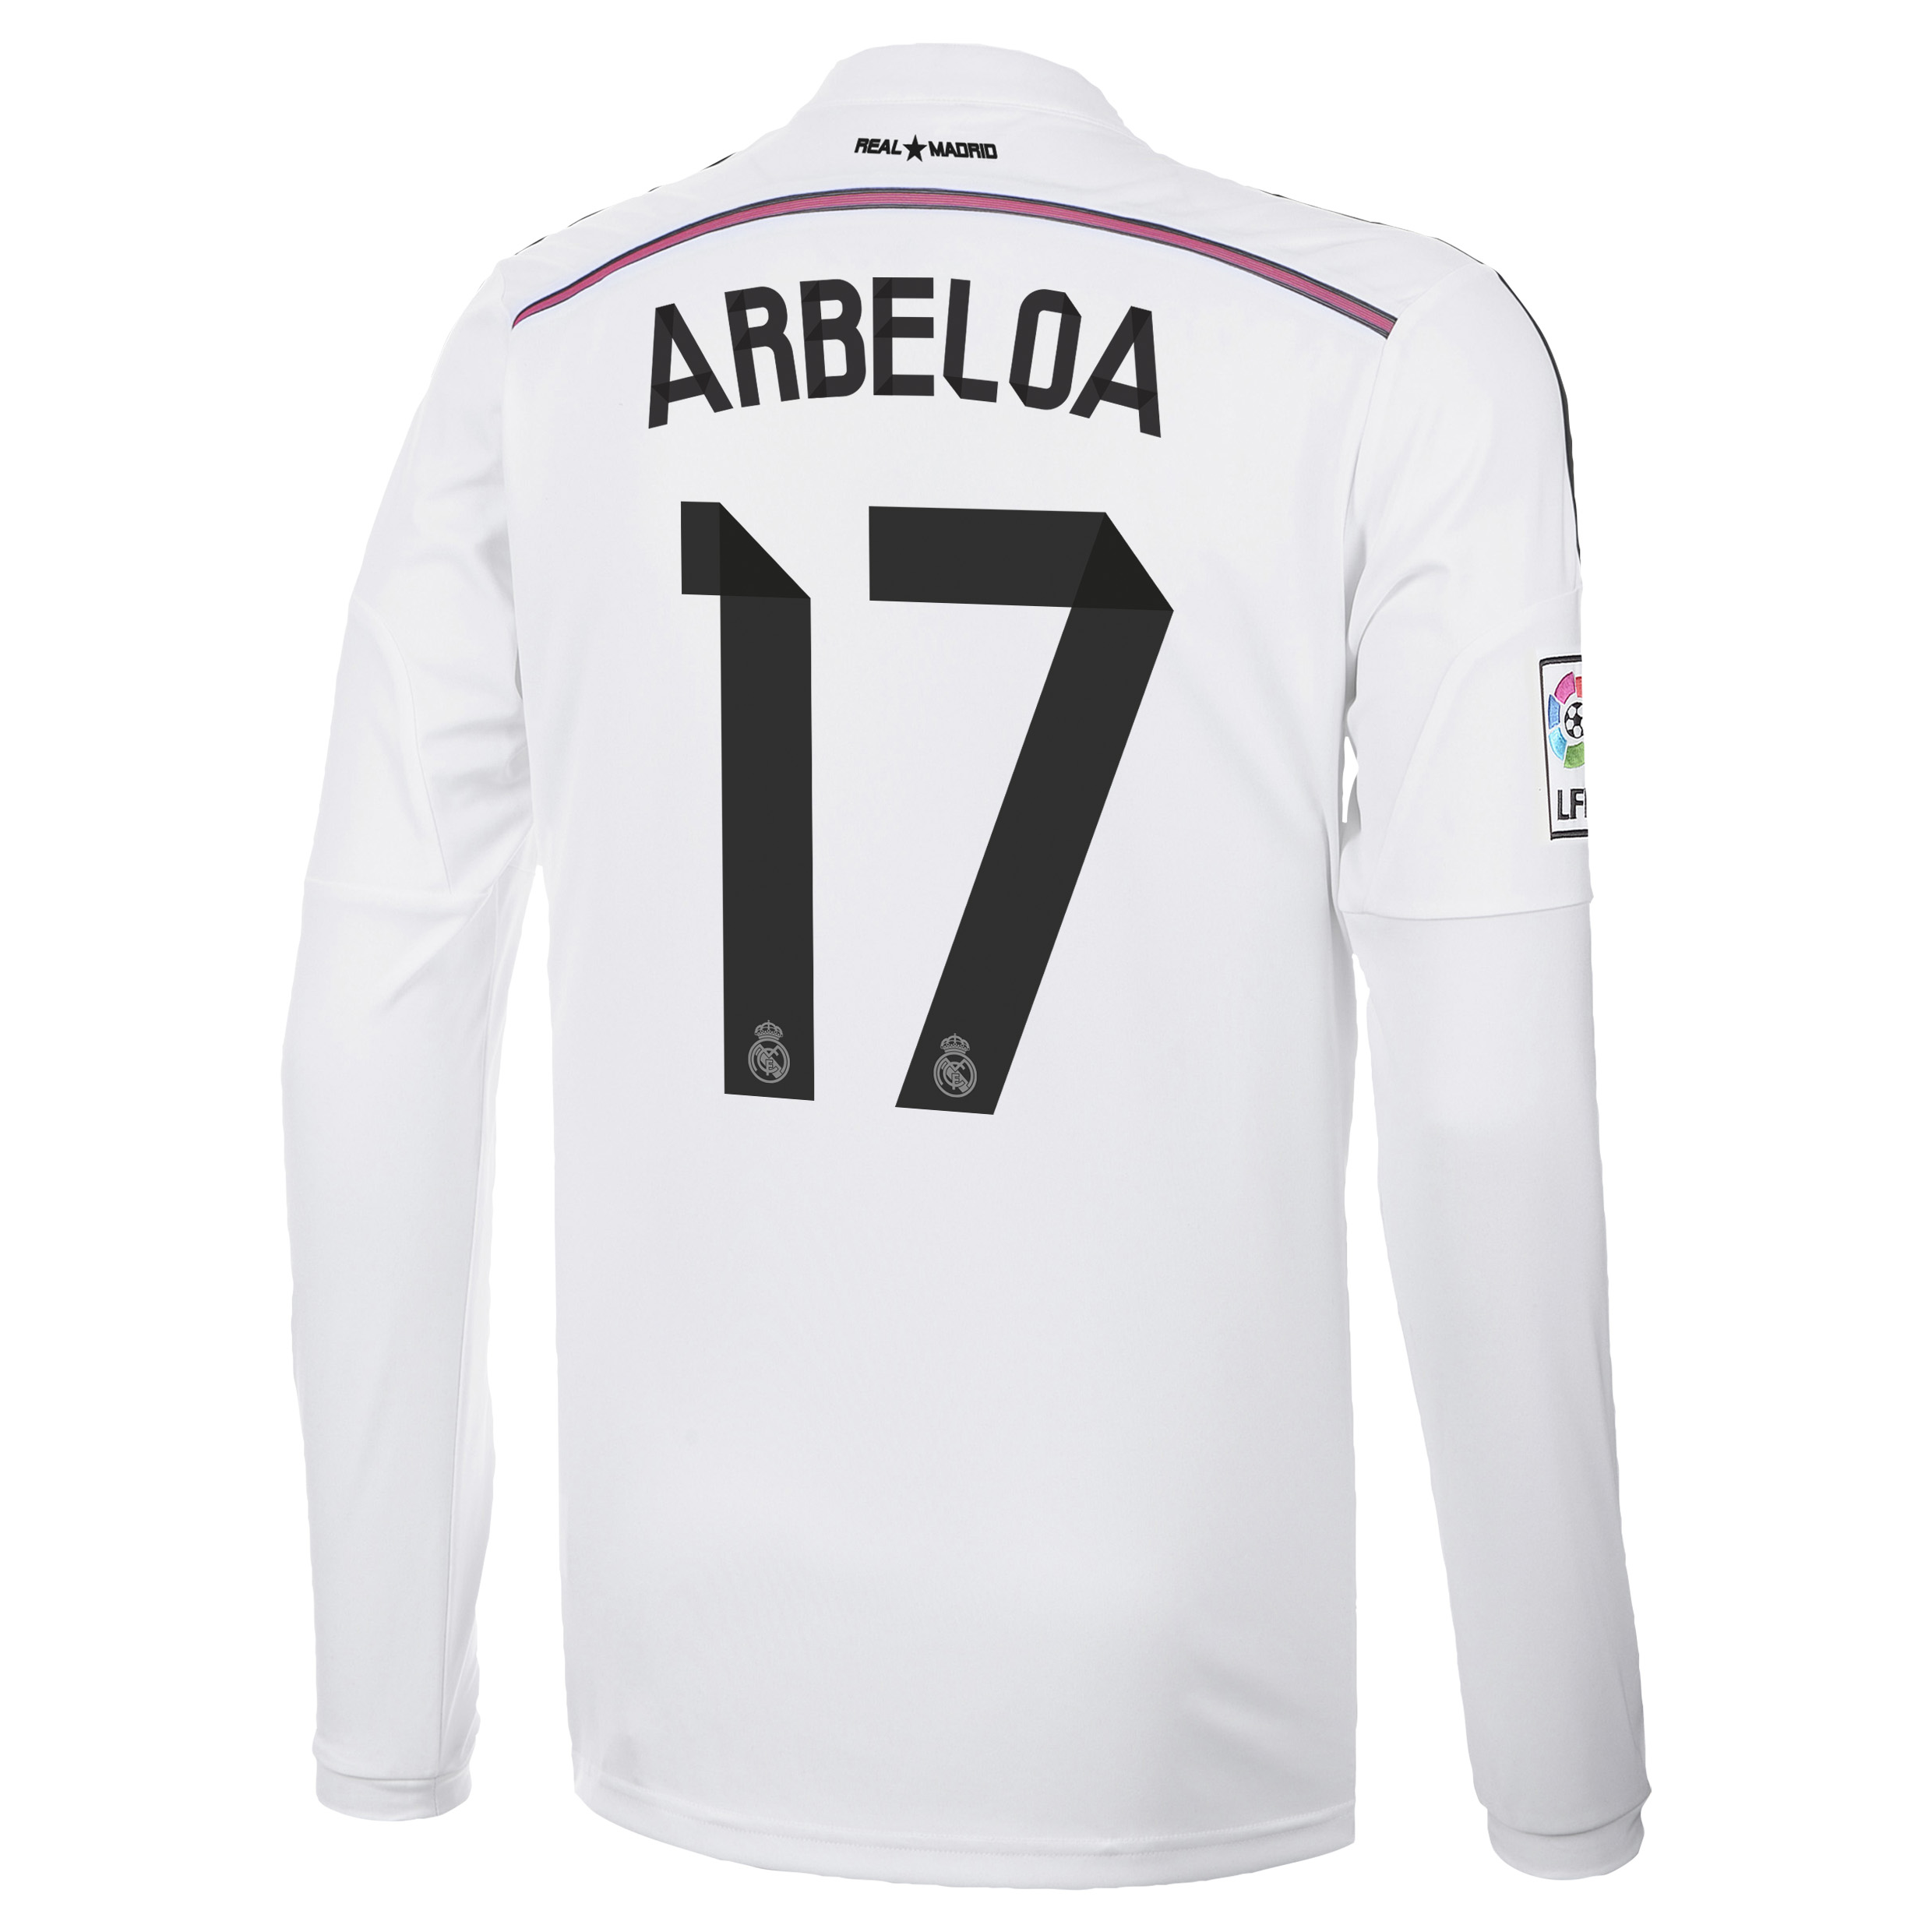 Real Madrid Home Shirt 2014/15 Long Sleeve with Arbeloa 17 printing